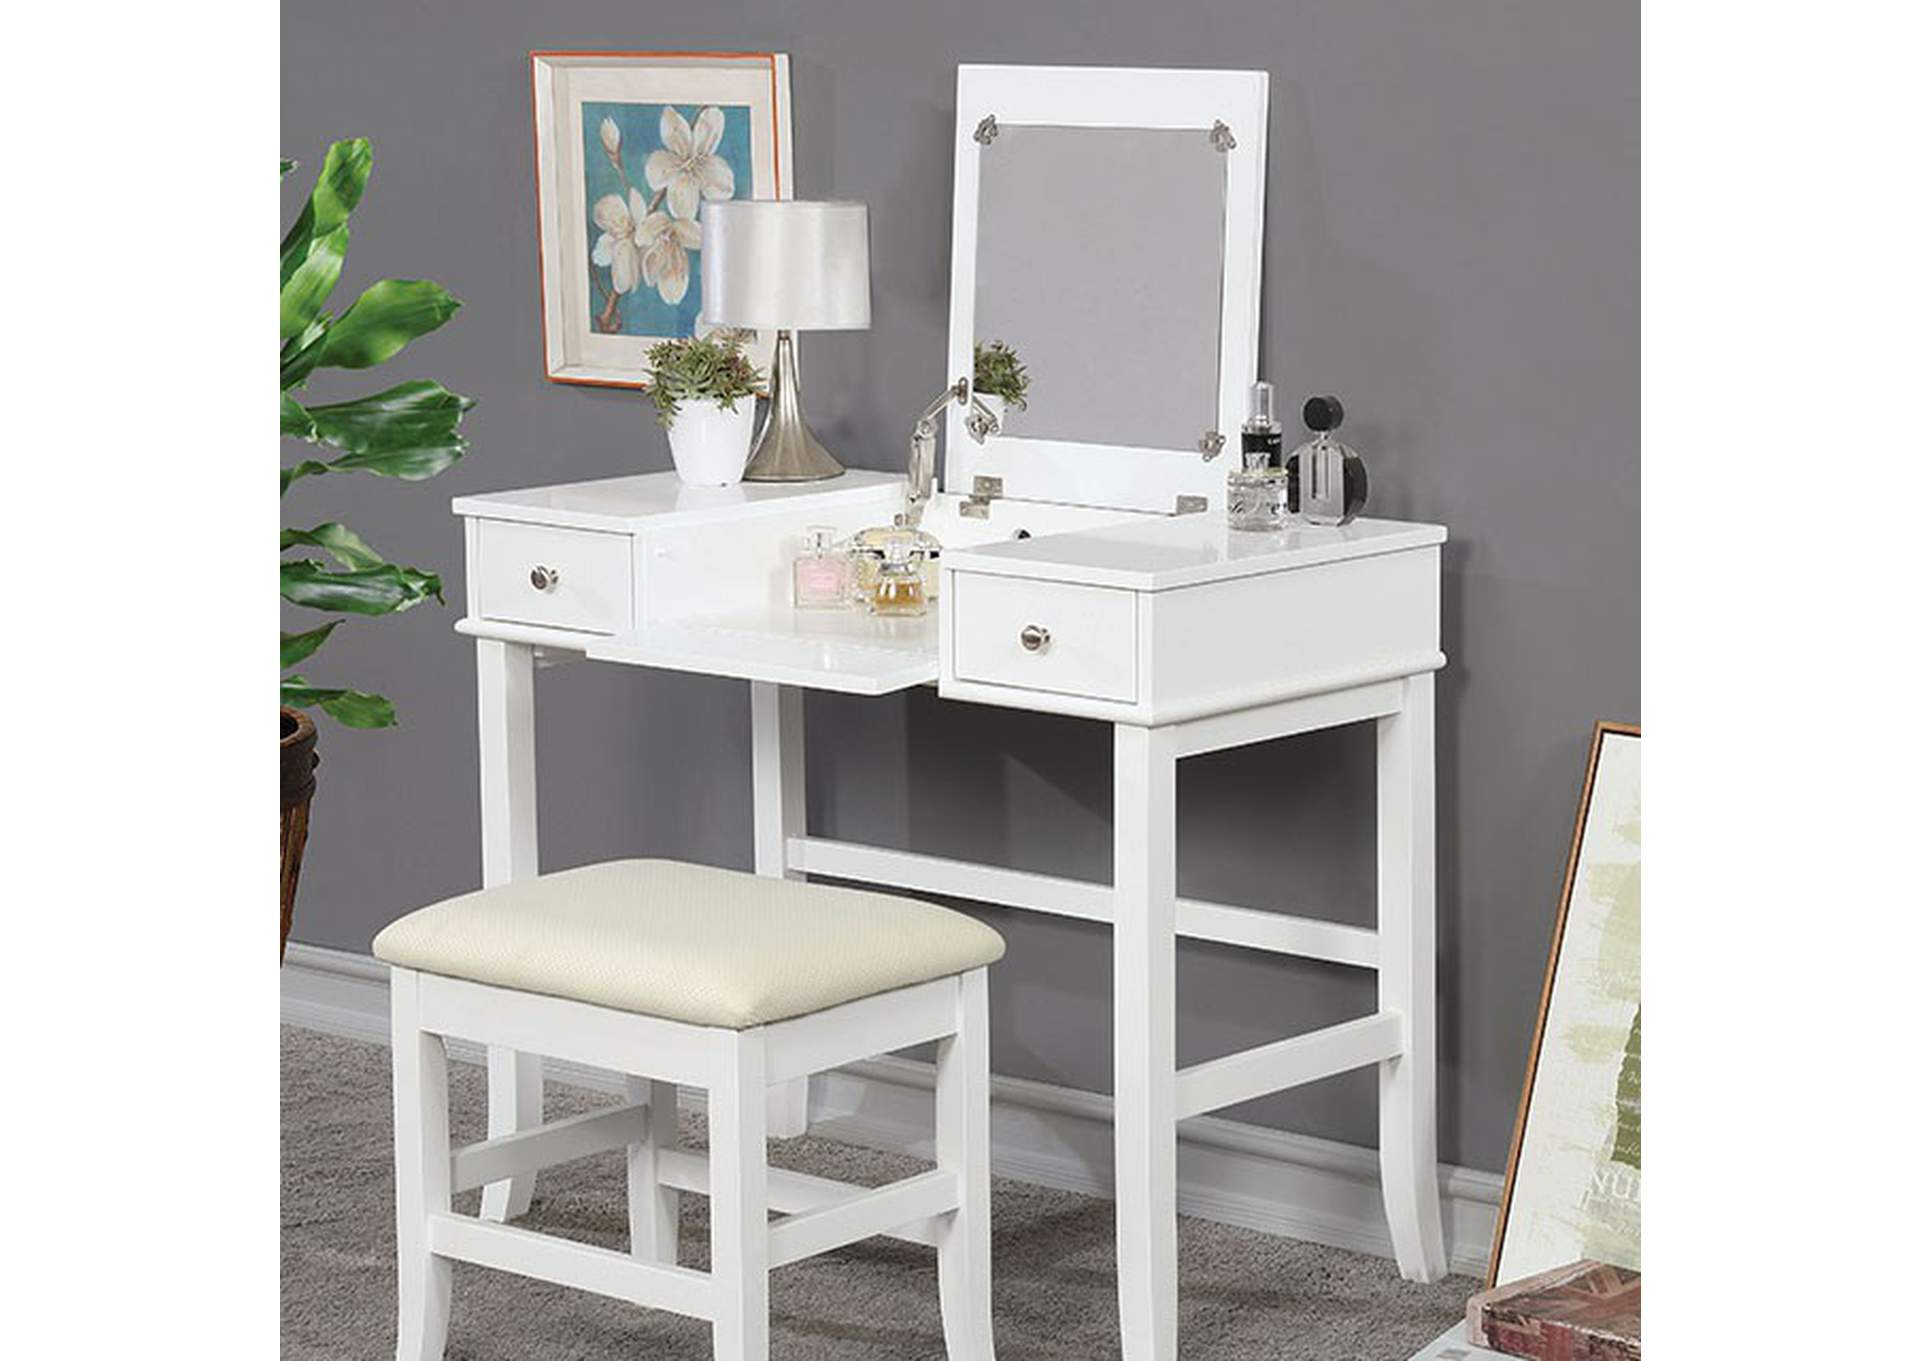 Kelis White Vanity Set,Furniture of America